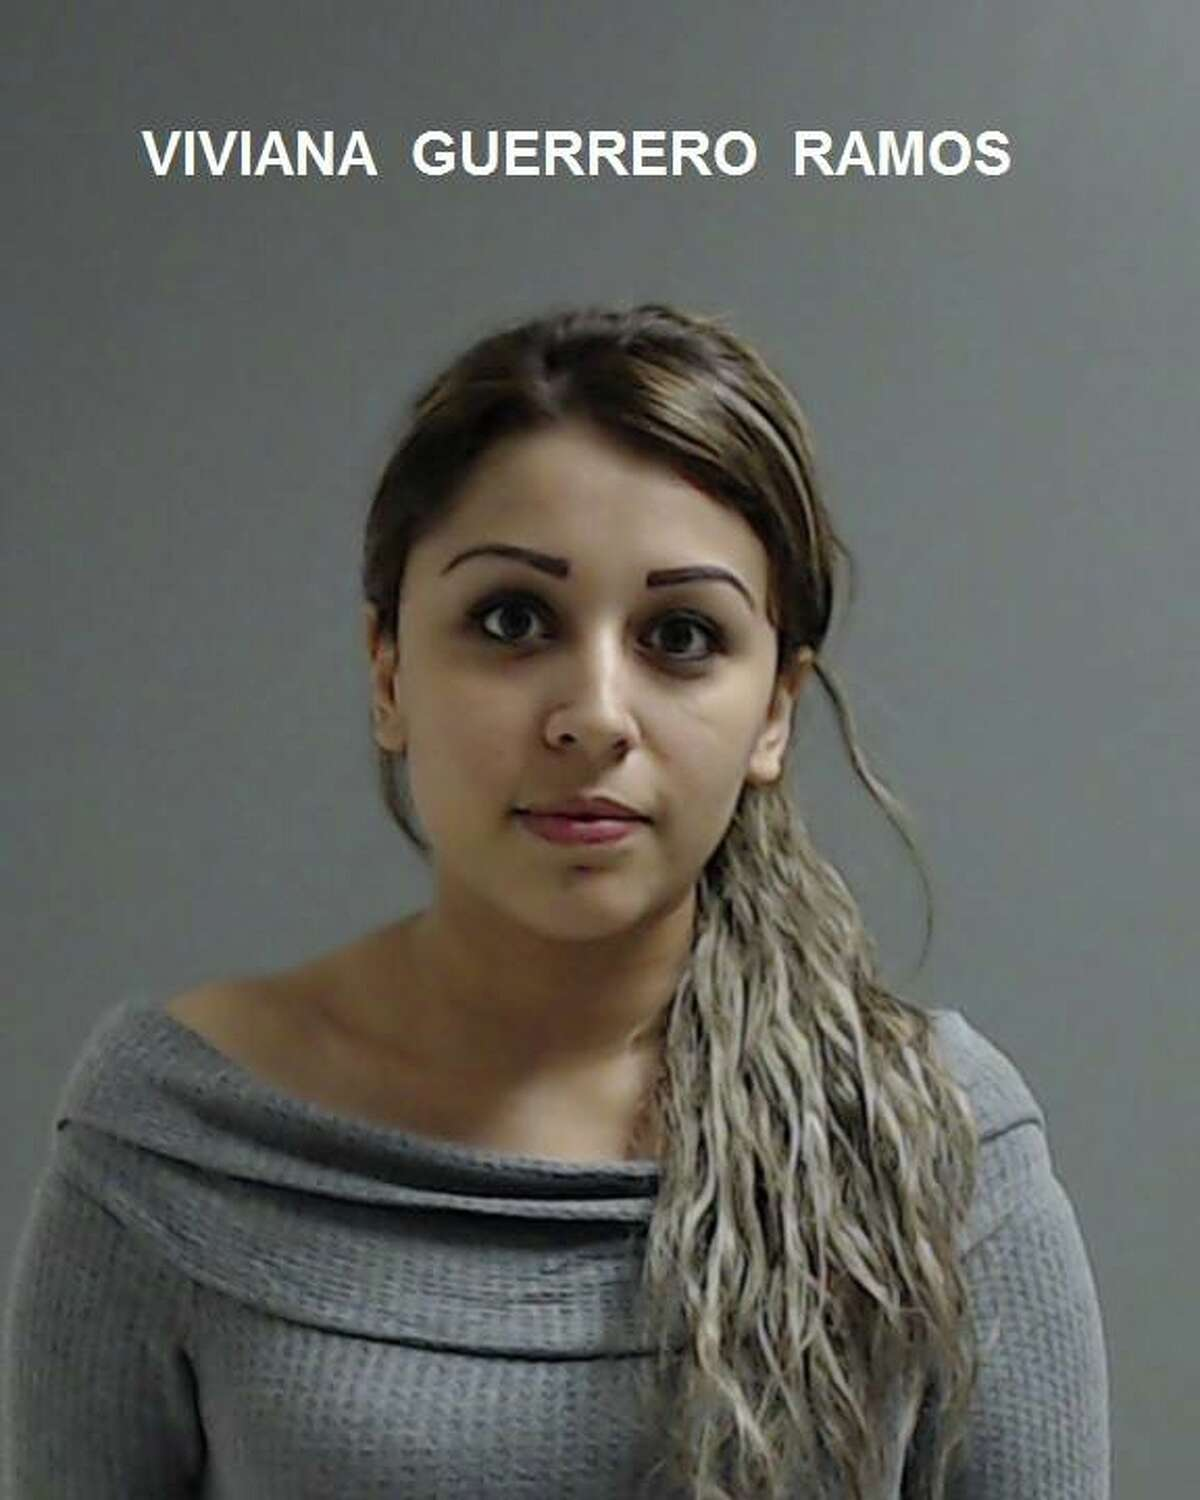 Viviana Guerrero Ramos, 29 Charges:Keeping a gambling place, promotion of gambling place, possession of gambling device/equipment/paraphernalia, engaging in organized criminal activity Charge date:March 16, 2017